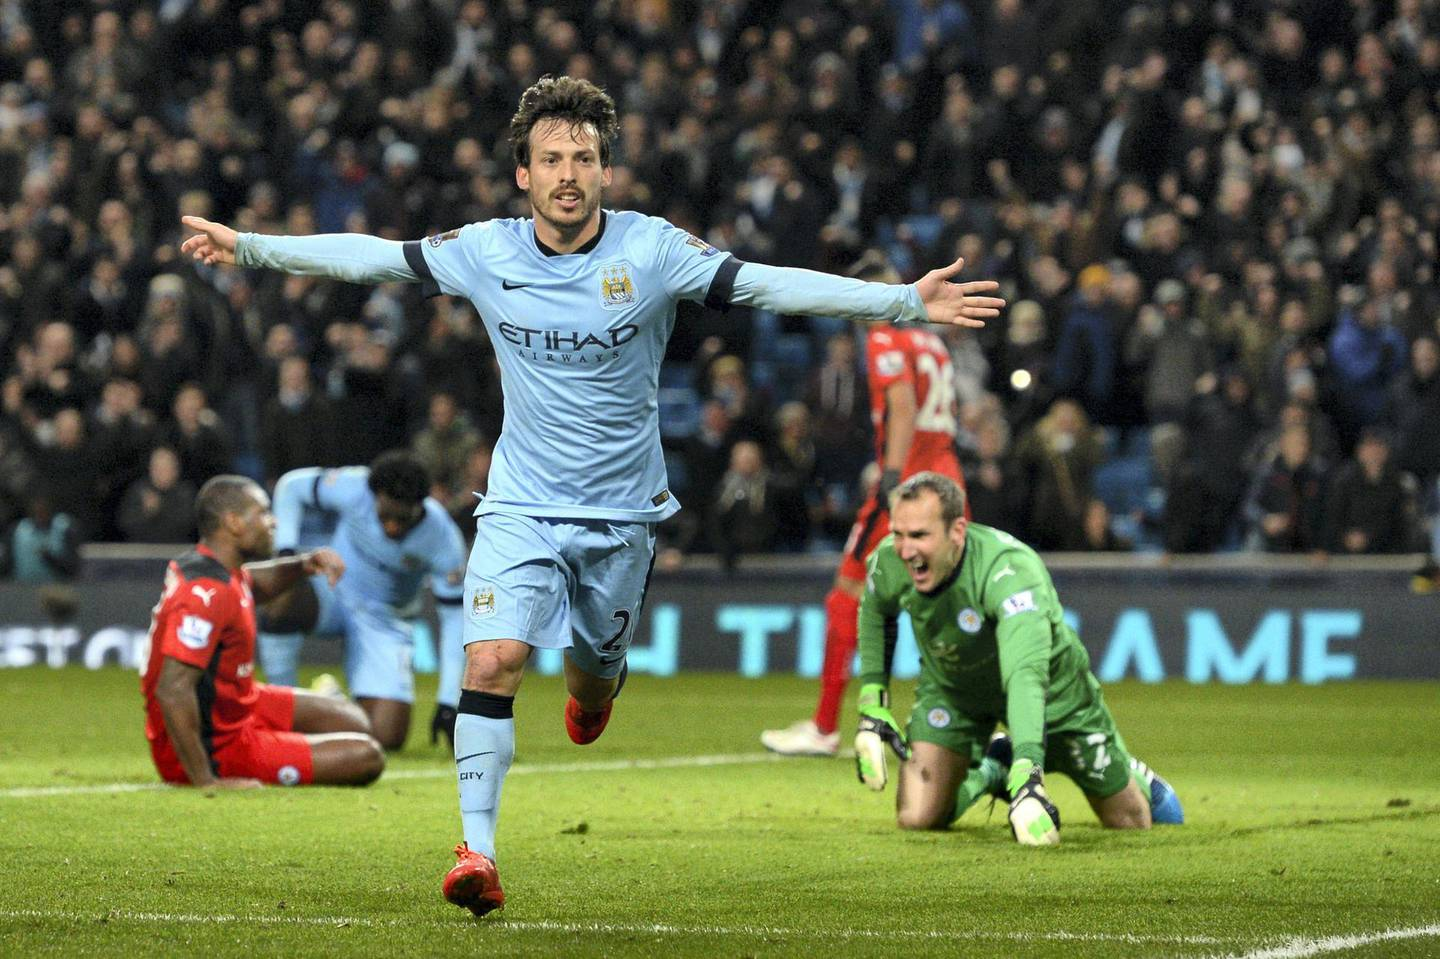 """Manchester City's Spanish midfielder David Silva celebrates scoring the opening goal as Leicester City's Australian goalkeeper Mark Schwarzer reacts (R) during the English Premier League football match between Manchester City and Leicester City at the Etihad Stadium in Manchester, north west England, on March 4, 2015. AFP PHOTO / OLI SCARFF  RESTRICTED TO EDITORIAL USE. NO USE WITH UNAUTHORIZED AUDIO, VIDEO, DATA, FIXTURE LISTS, CLUB/LEAGUE LOGOS OR """"LIVE"""" SERVICES. ONLINE IN-MATCH USE LIMITED TO 45 IMAGES, NO VIDEO EMULATION. NO USE IN BETTING, GAMES OR SINGLE CLUB/LEAGUE/PLAYER PUBLICATIONS. (Photo by OLI SCARFF / AFP)"""